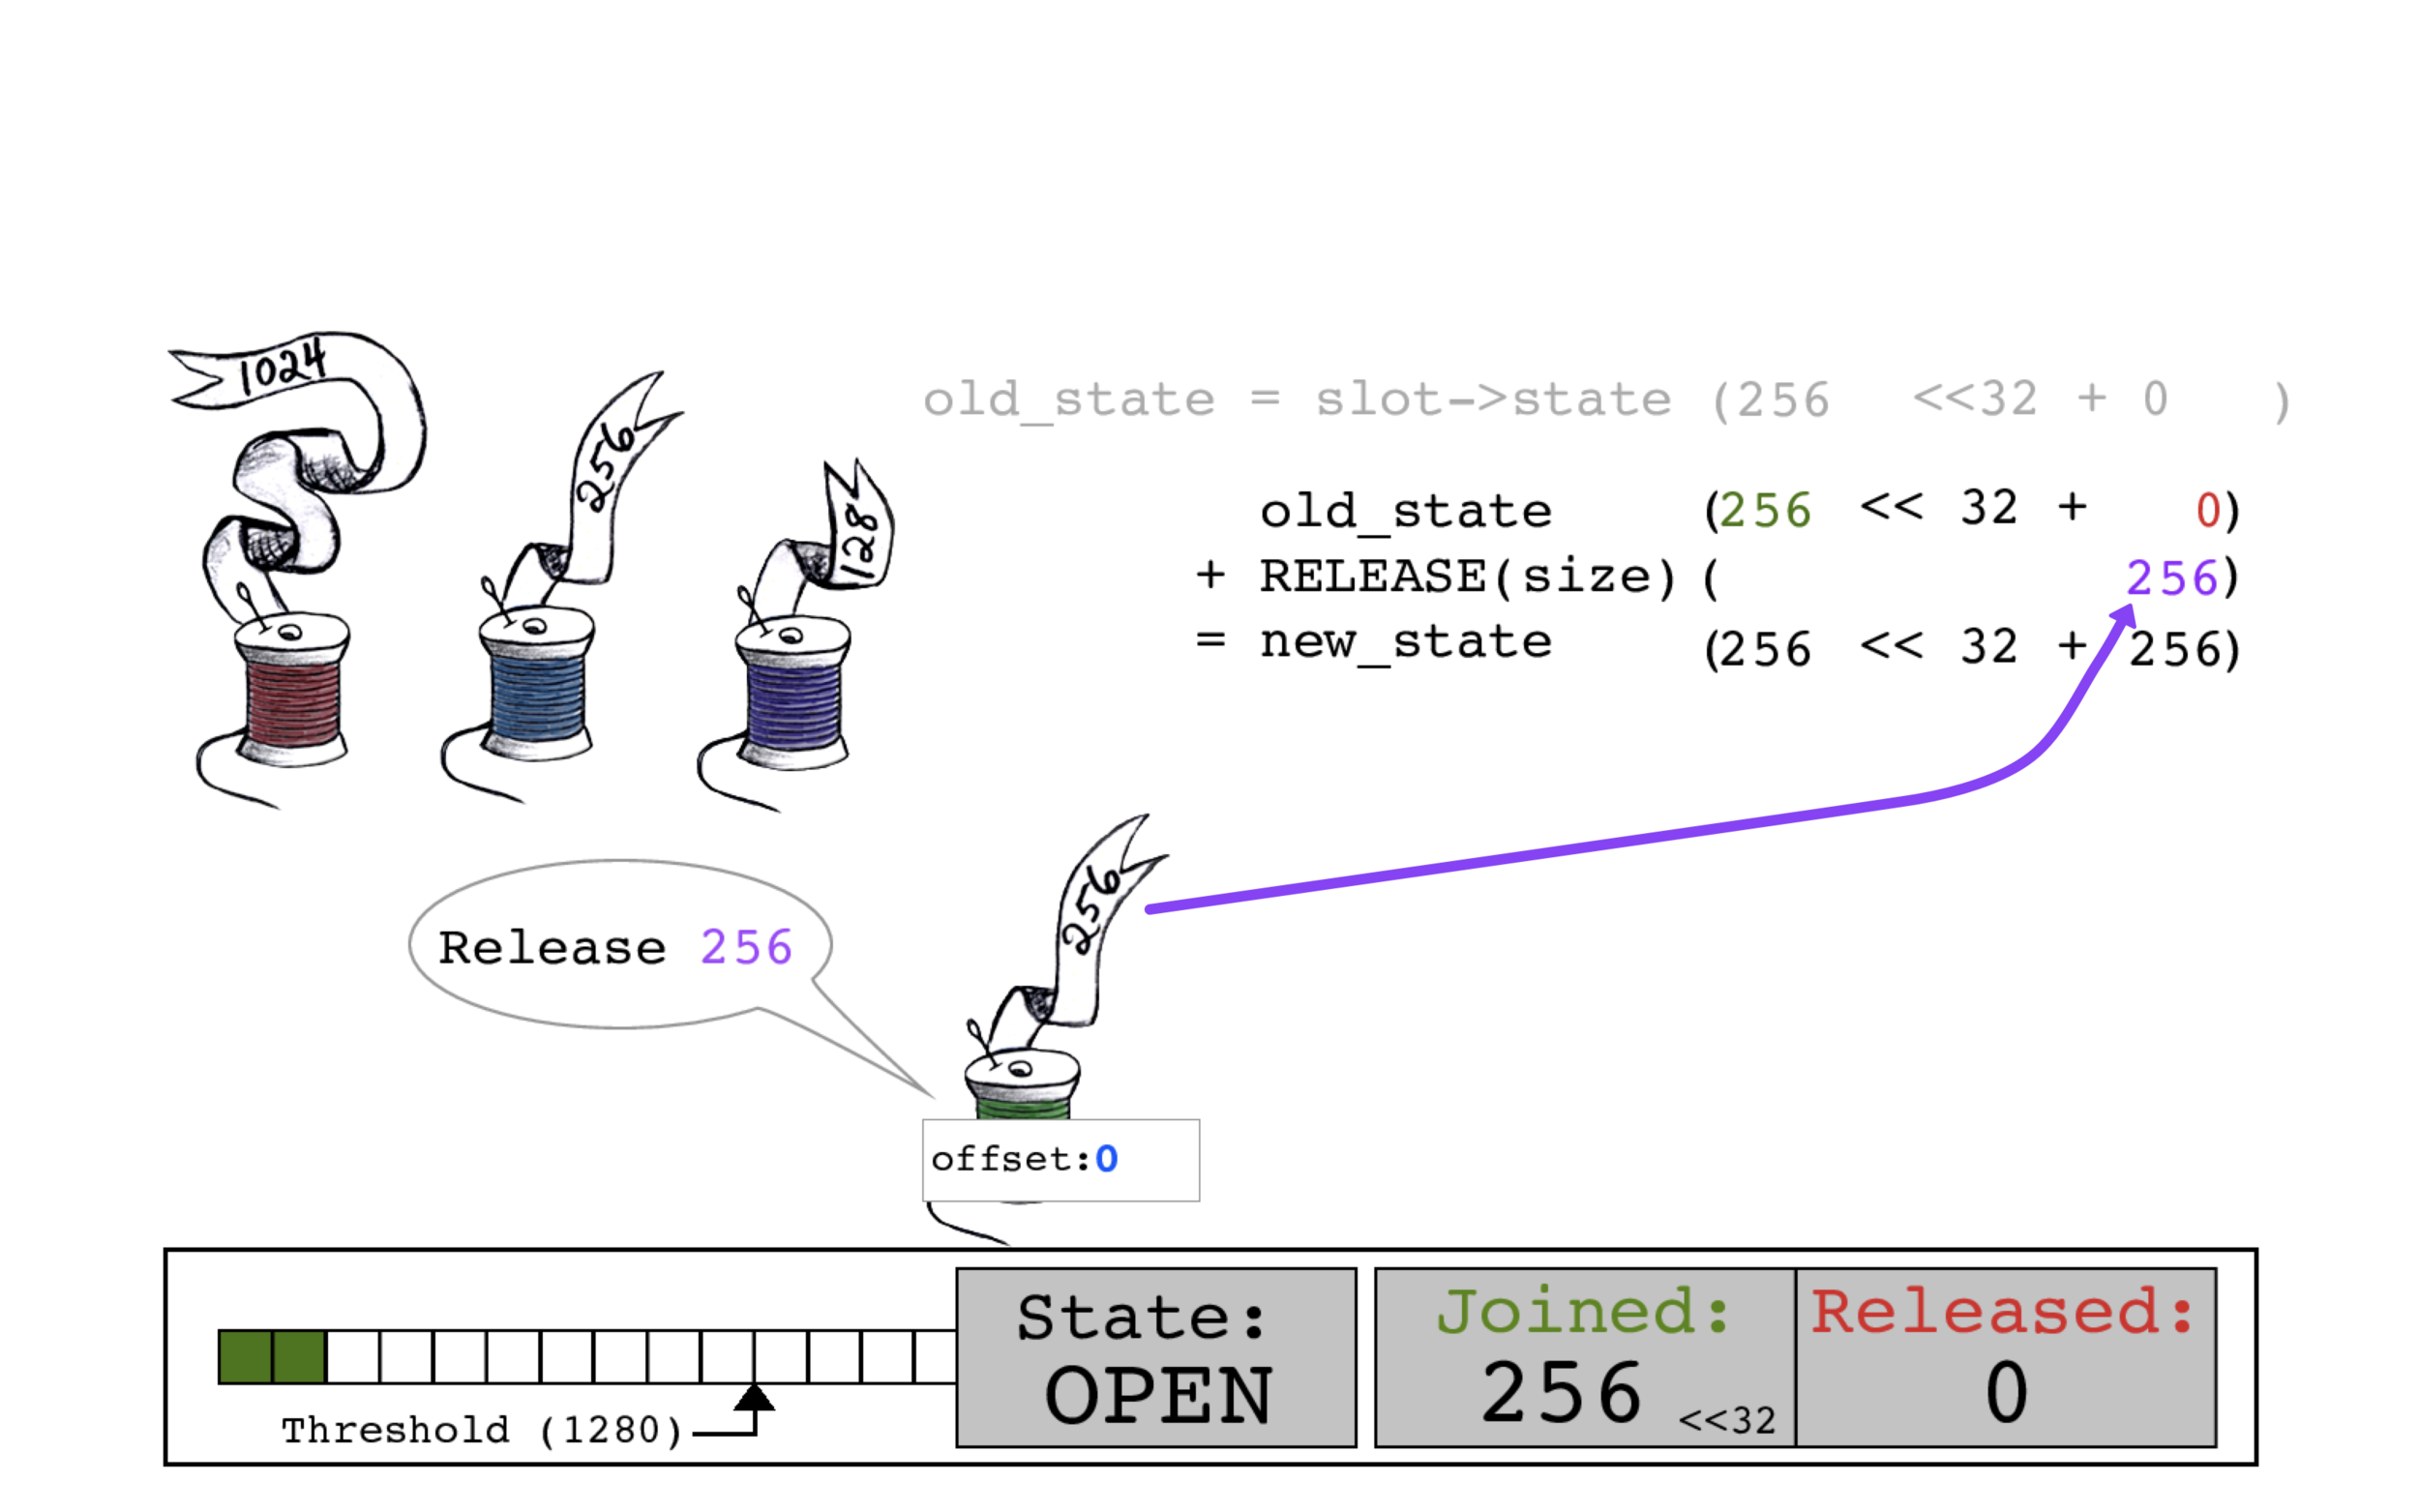 This time the thread adds its size of 256 to the RELEASED bits to create new_state.